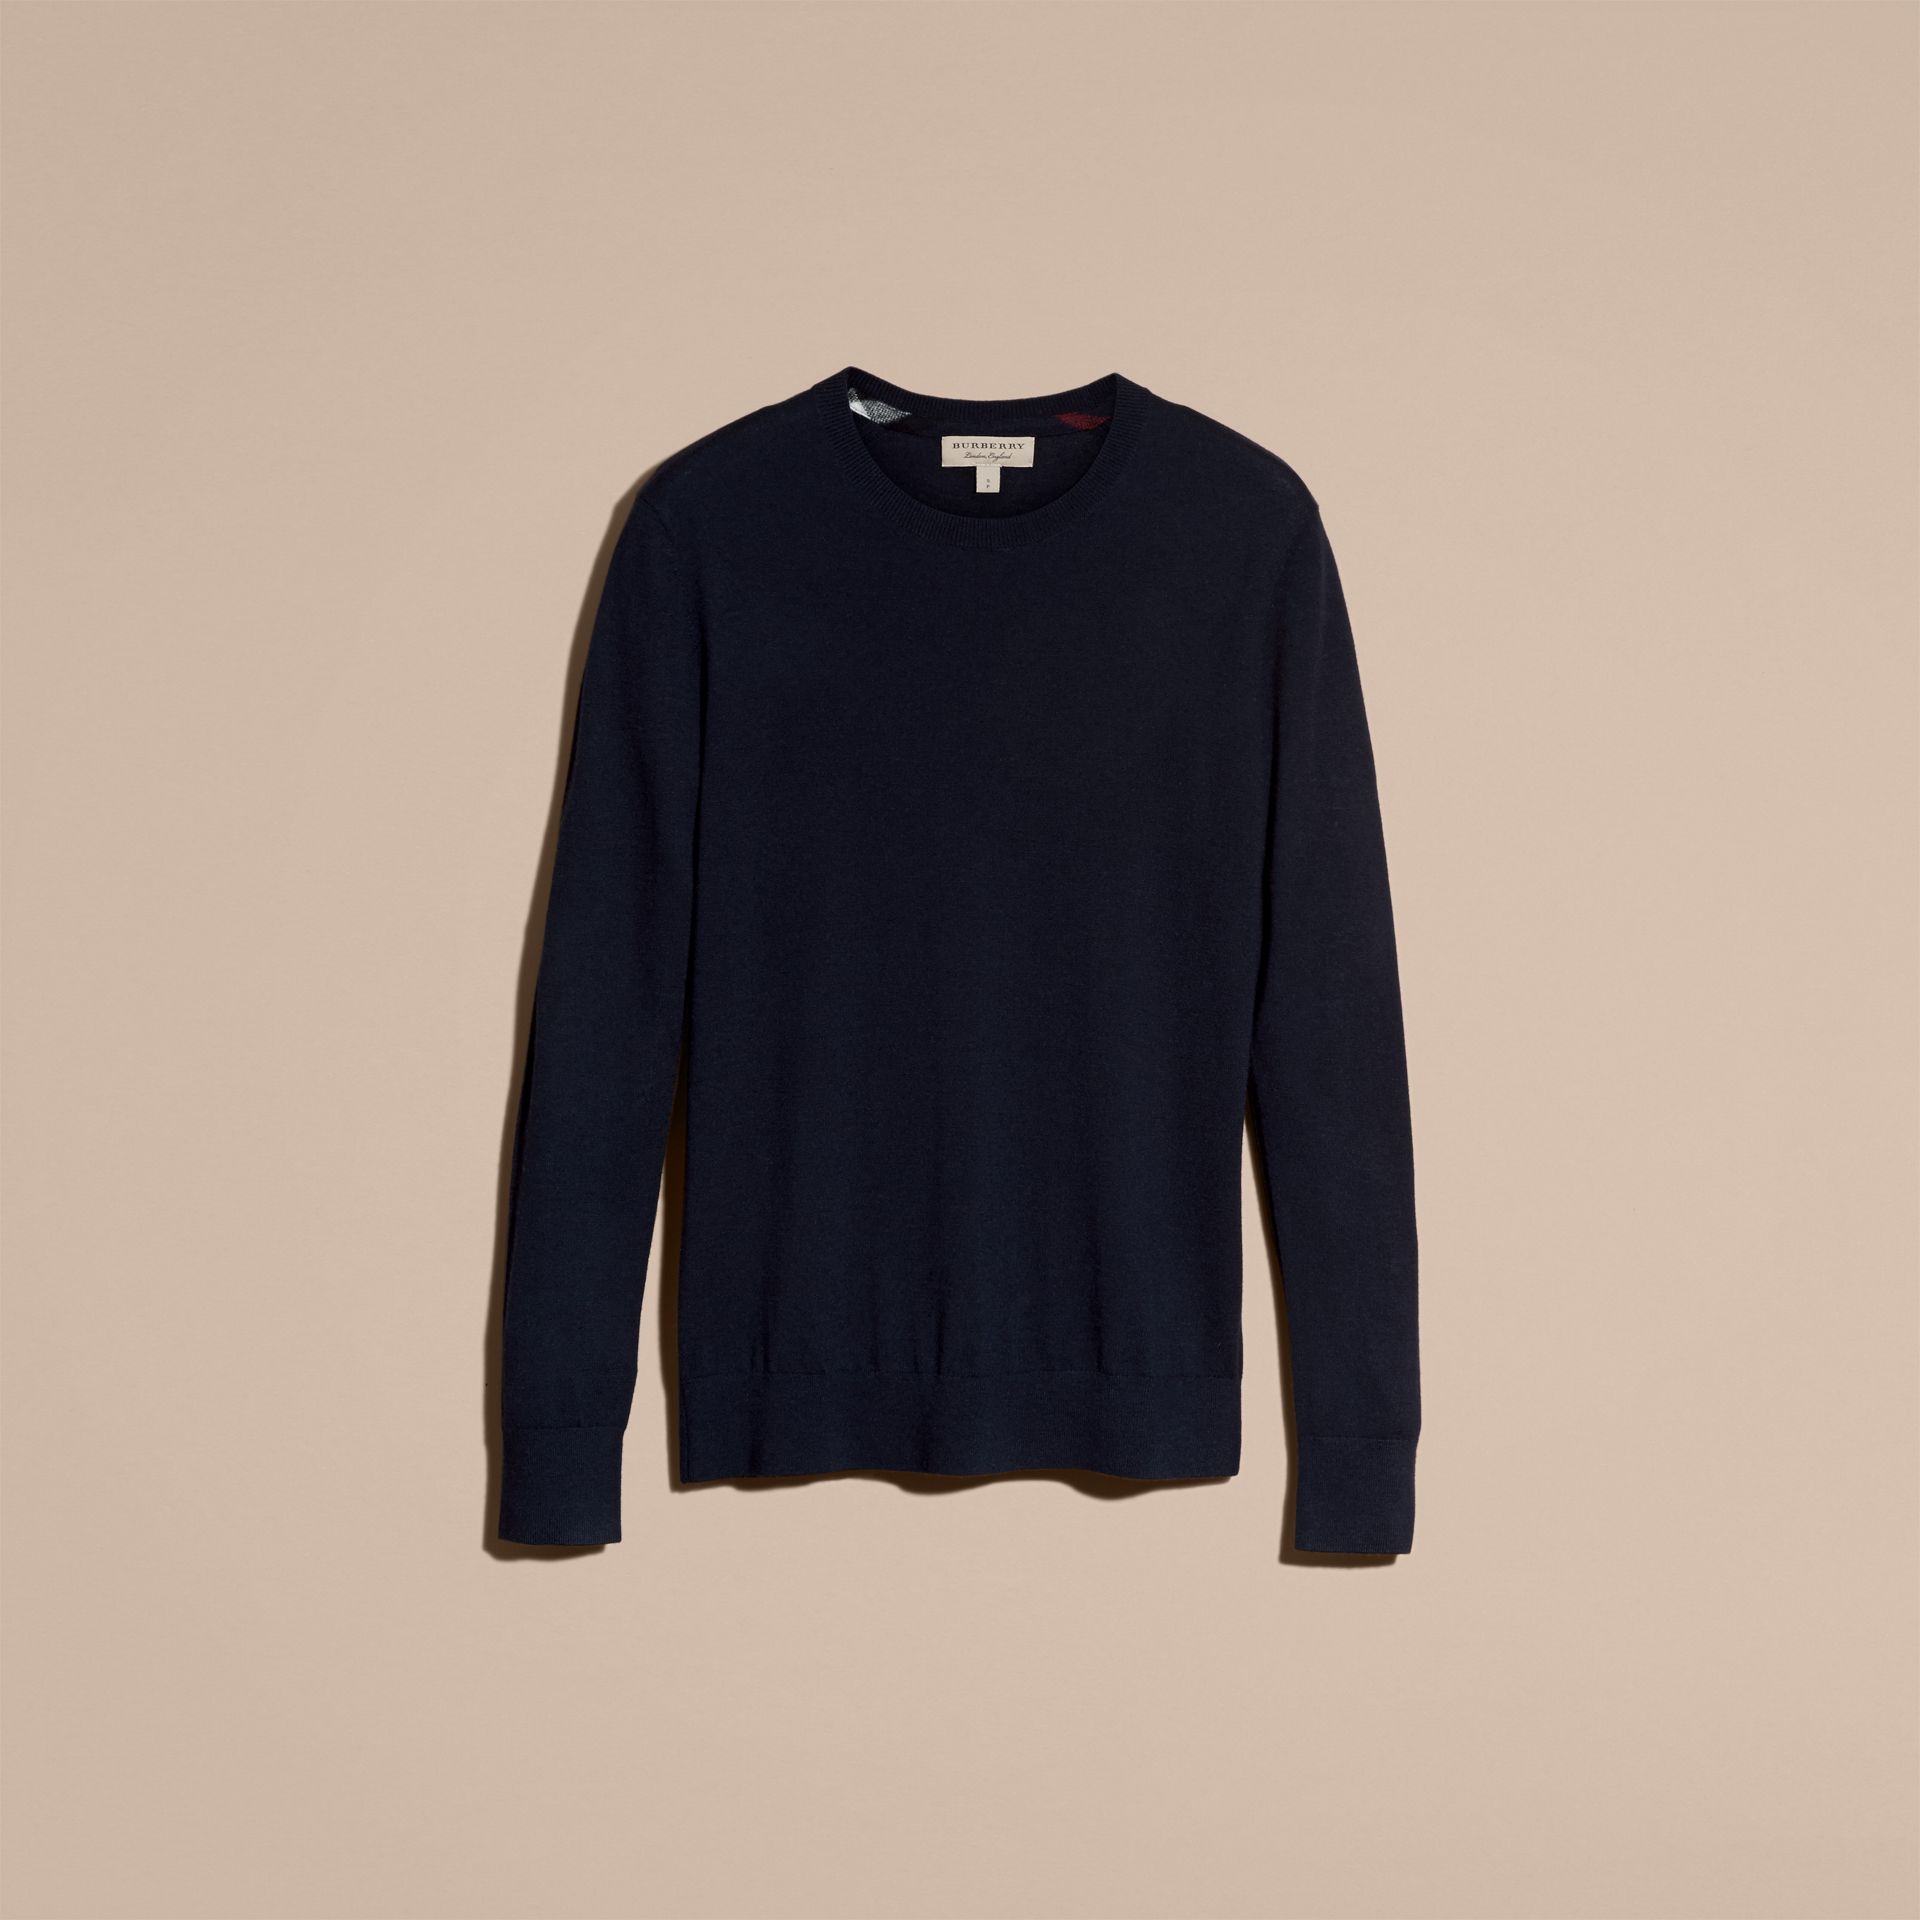 Check Jacquard Detail Cashmere Sweater in Navy - Men | Burberry Australia - gallery image 4